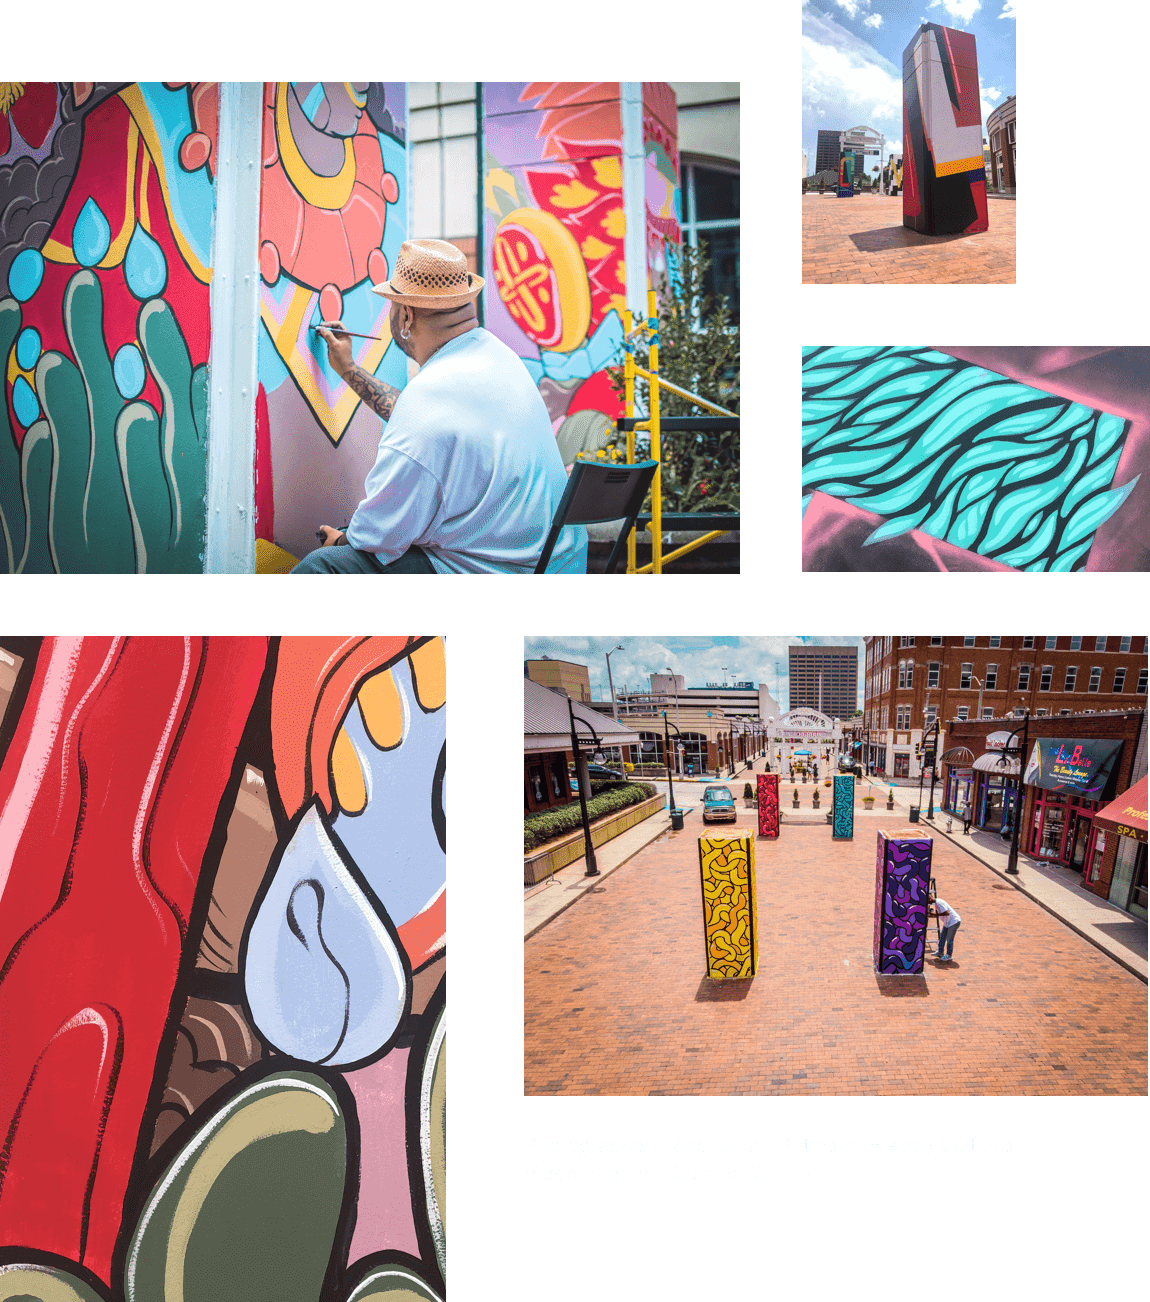 a collage of images depicting the new street art